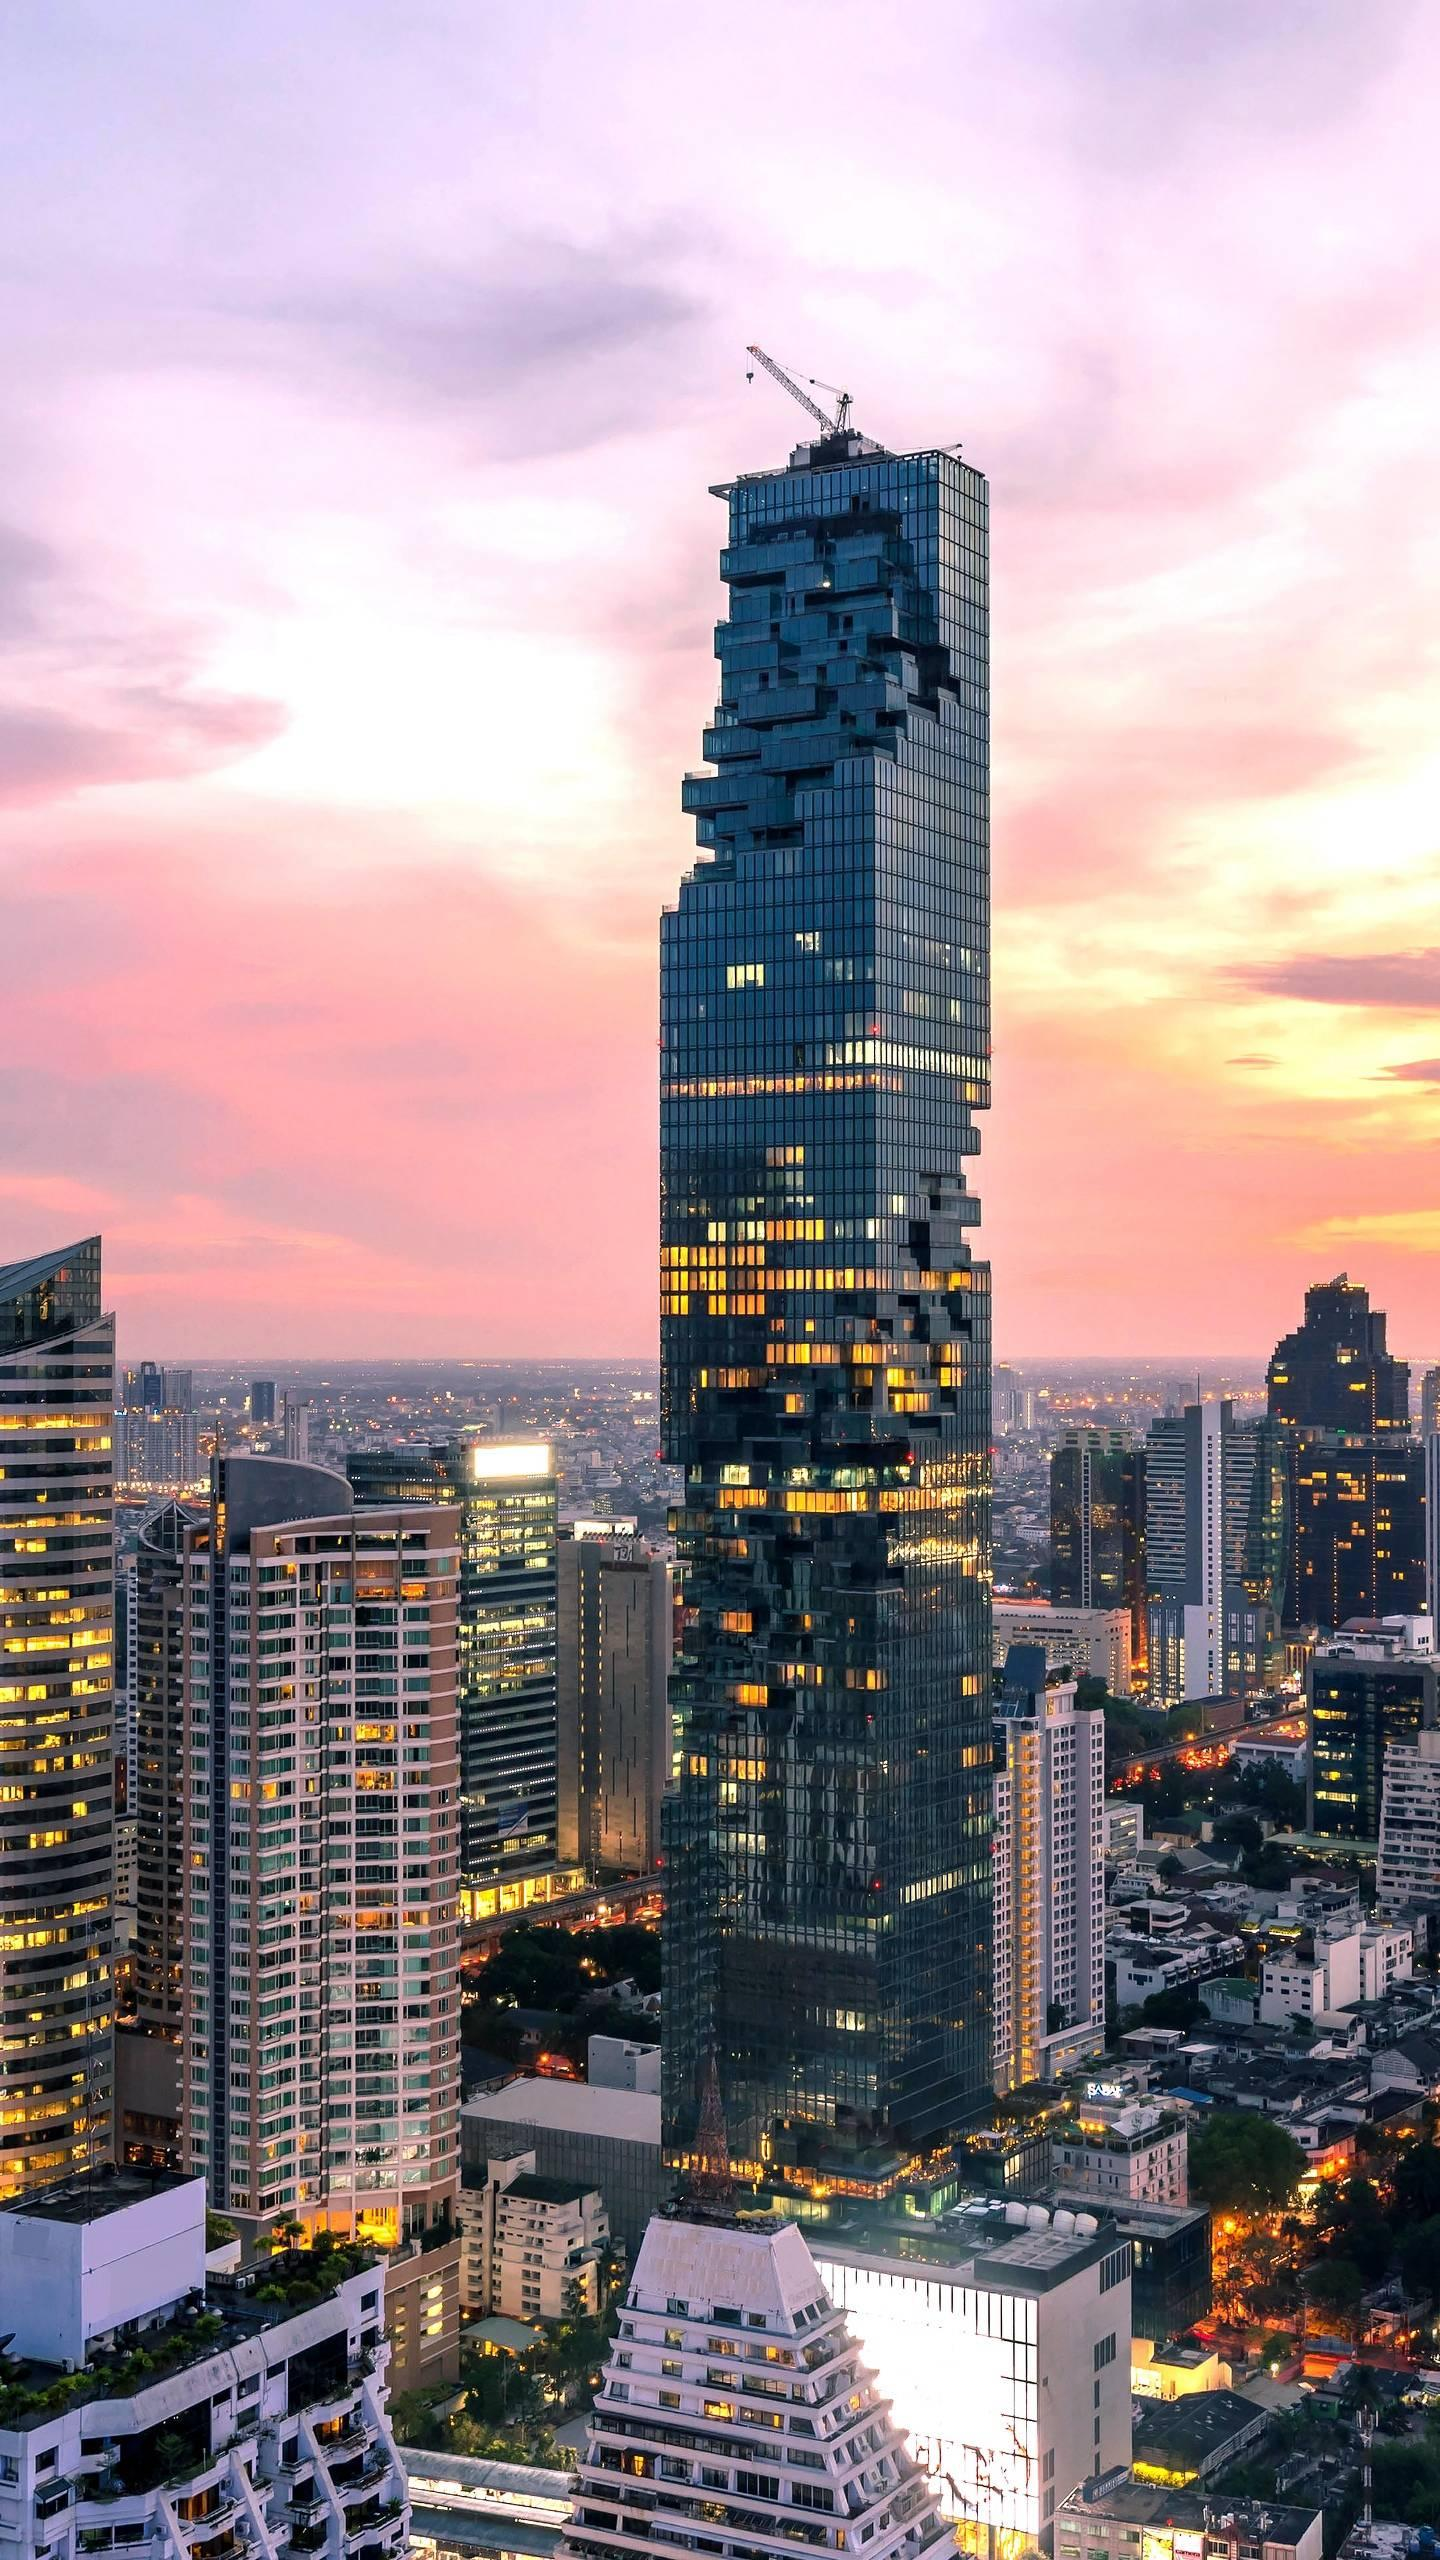 "Bangkok ""Corn Building"". The 77-story skyscraper has become the tallest building in Thailand, and the pixelated exterior design has been dubbed the ""corn building""."